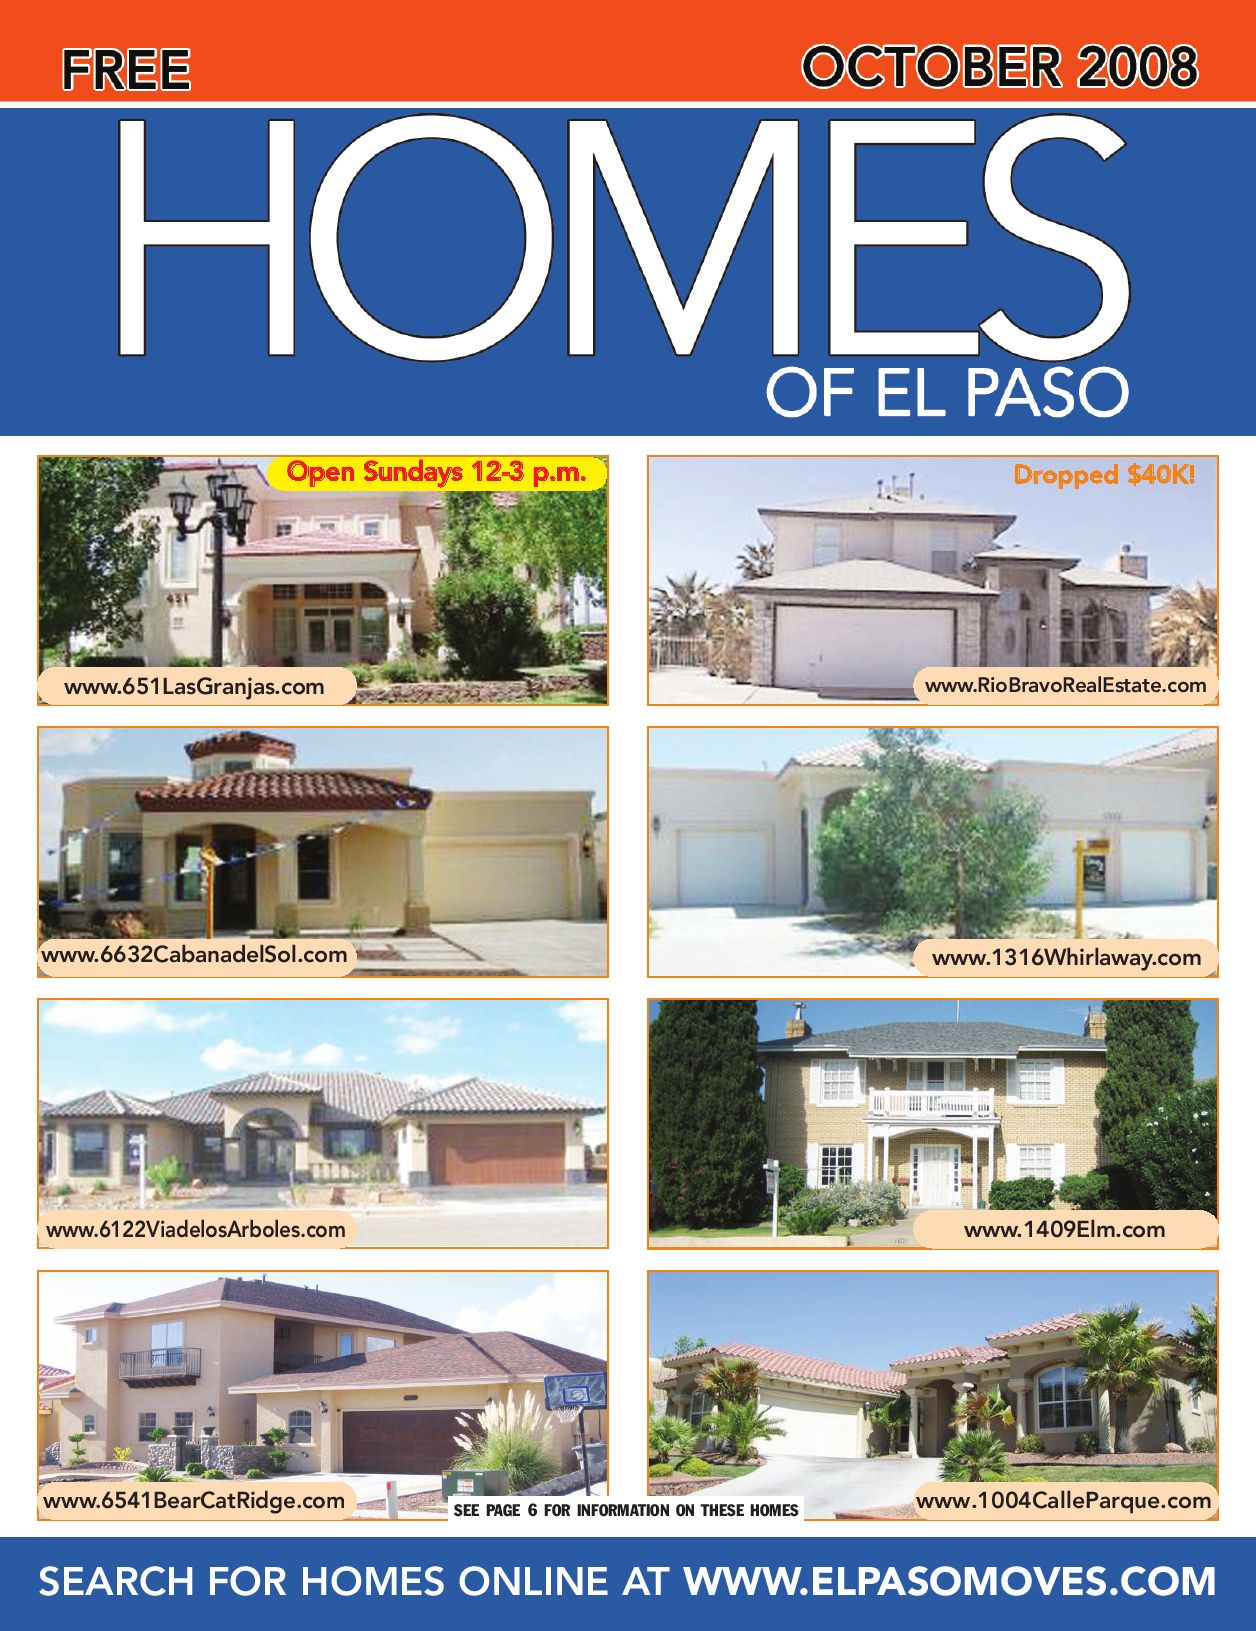 Homes of el paso by mesa publishing corporation issuu for Classic american el paso